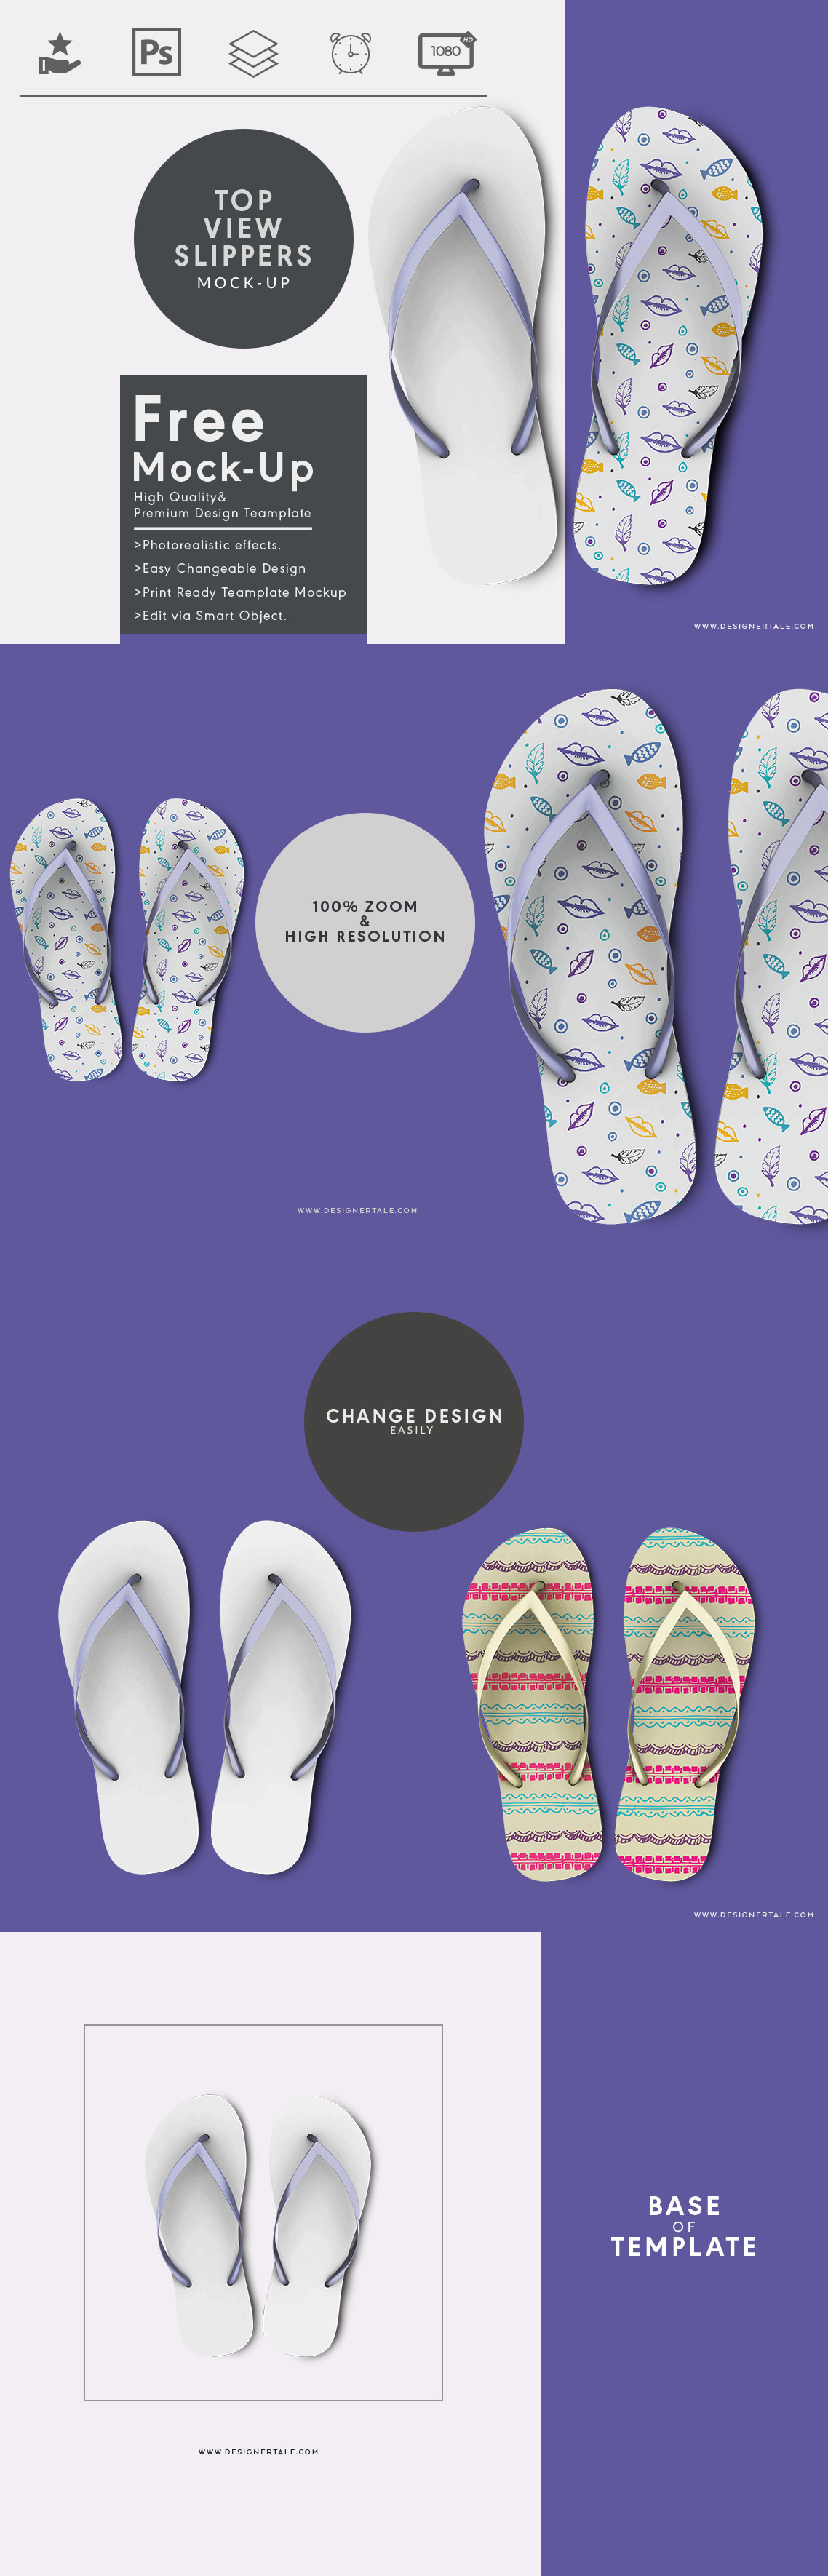 204ade2762aa6 Top view slippers mock up | Download Free PSD Mockup | Mockup, Top ...